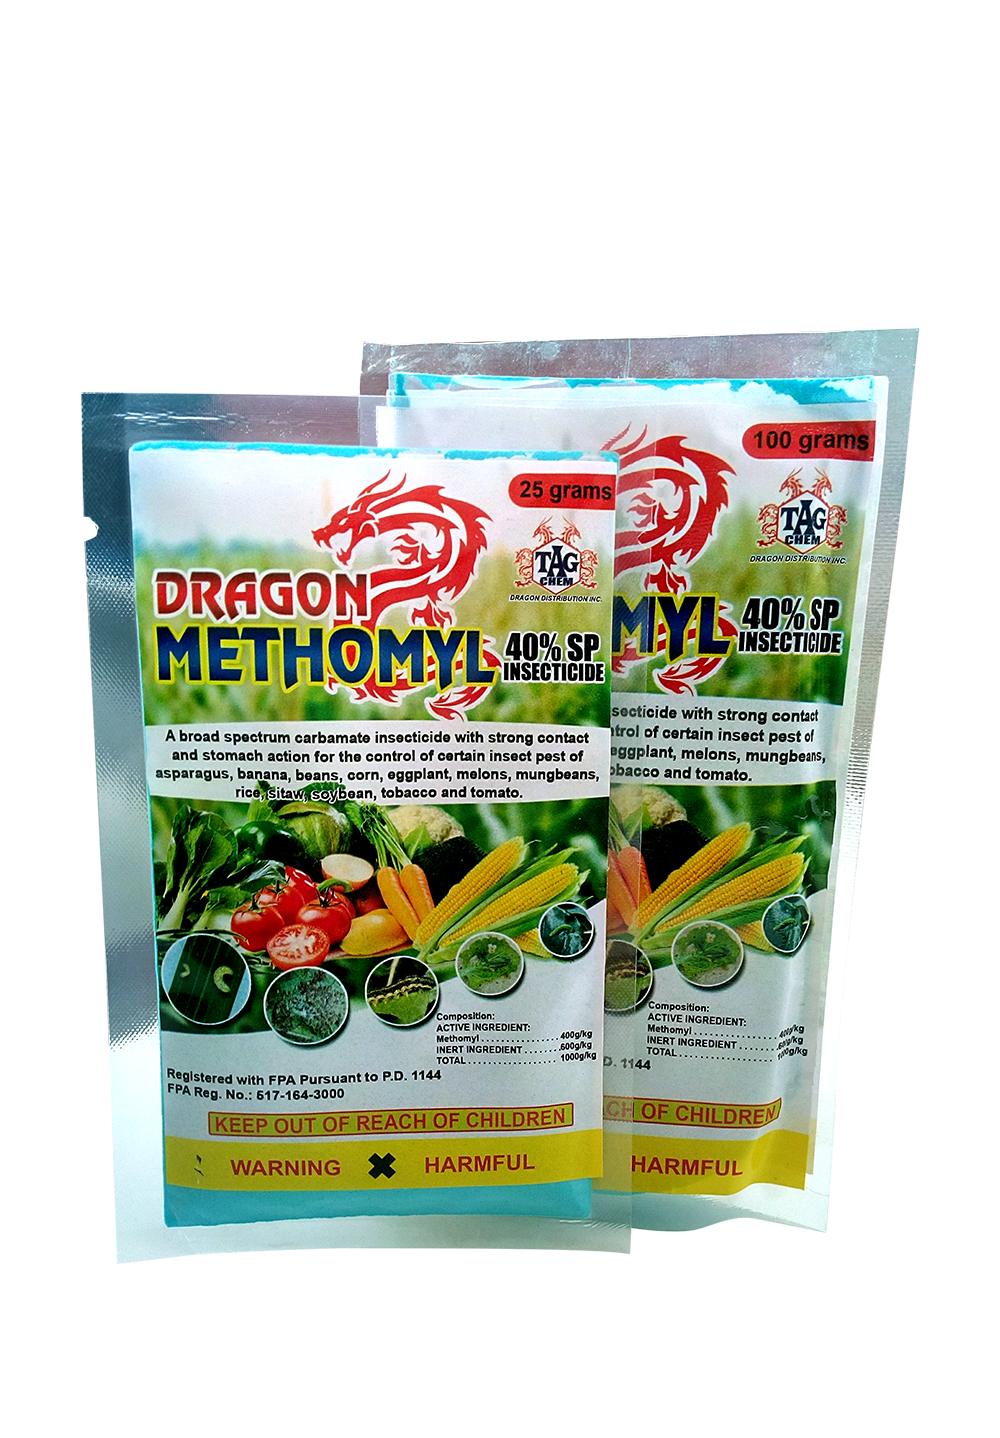 Dragon Methomyl Image